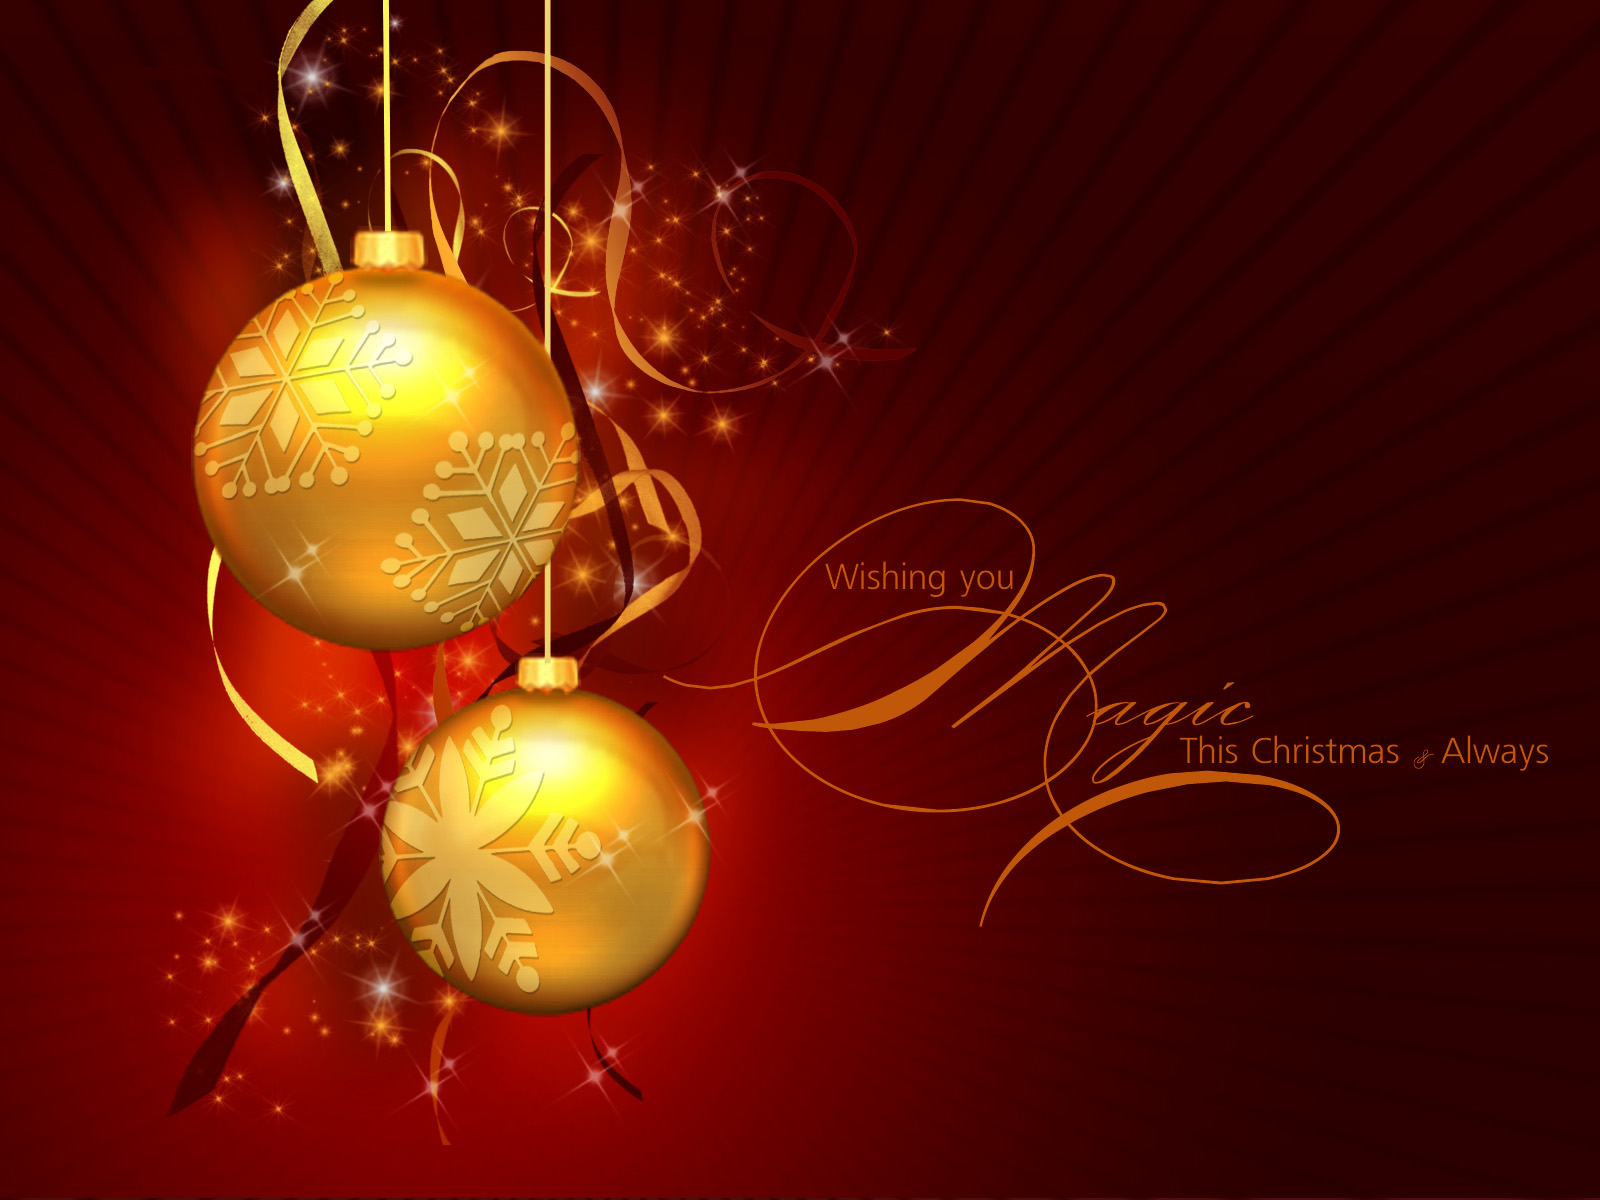 http://3.bp.blogspot.com/_MQlLocIxP40/TRRD3fLsbFI/AAAAAAAAAHE/kumzowNi8KU/s1600/Download%20christmas%202010%20wallpaper%20christmas%202010%20pc%20wallpaper%20christmas%202010%20desktop%20wallpapers%20christmas%202010%20printable%20wallpapers.jpg